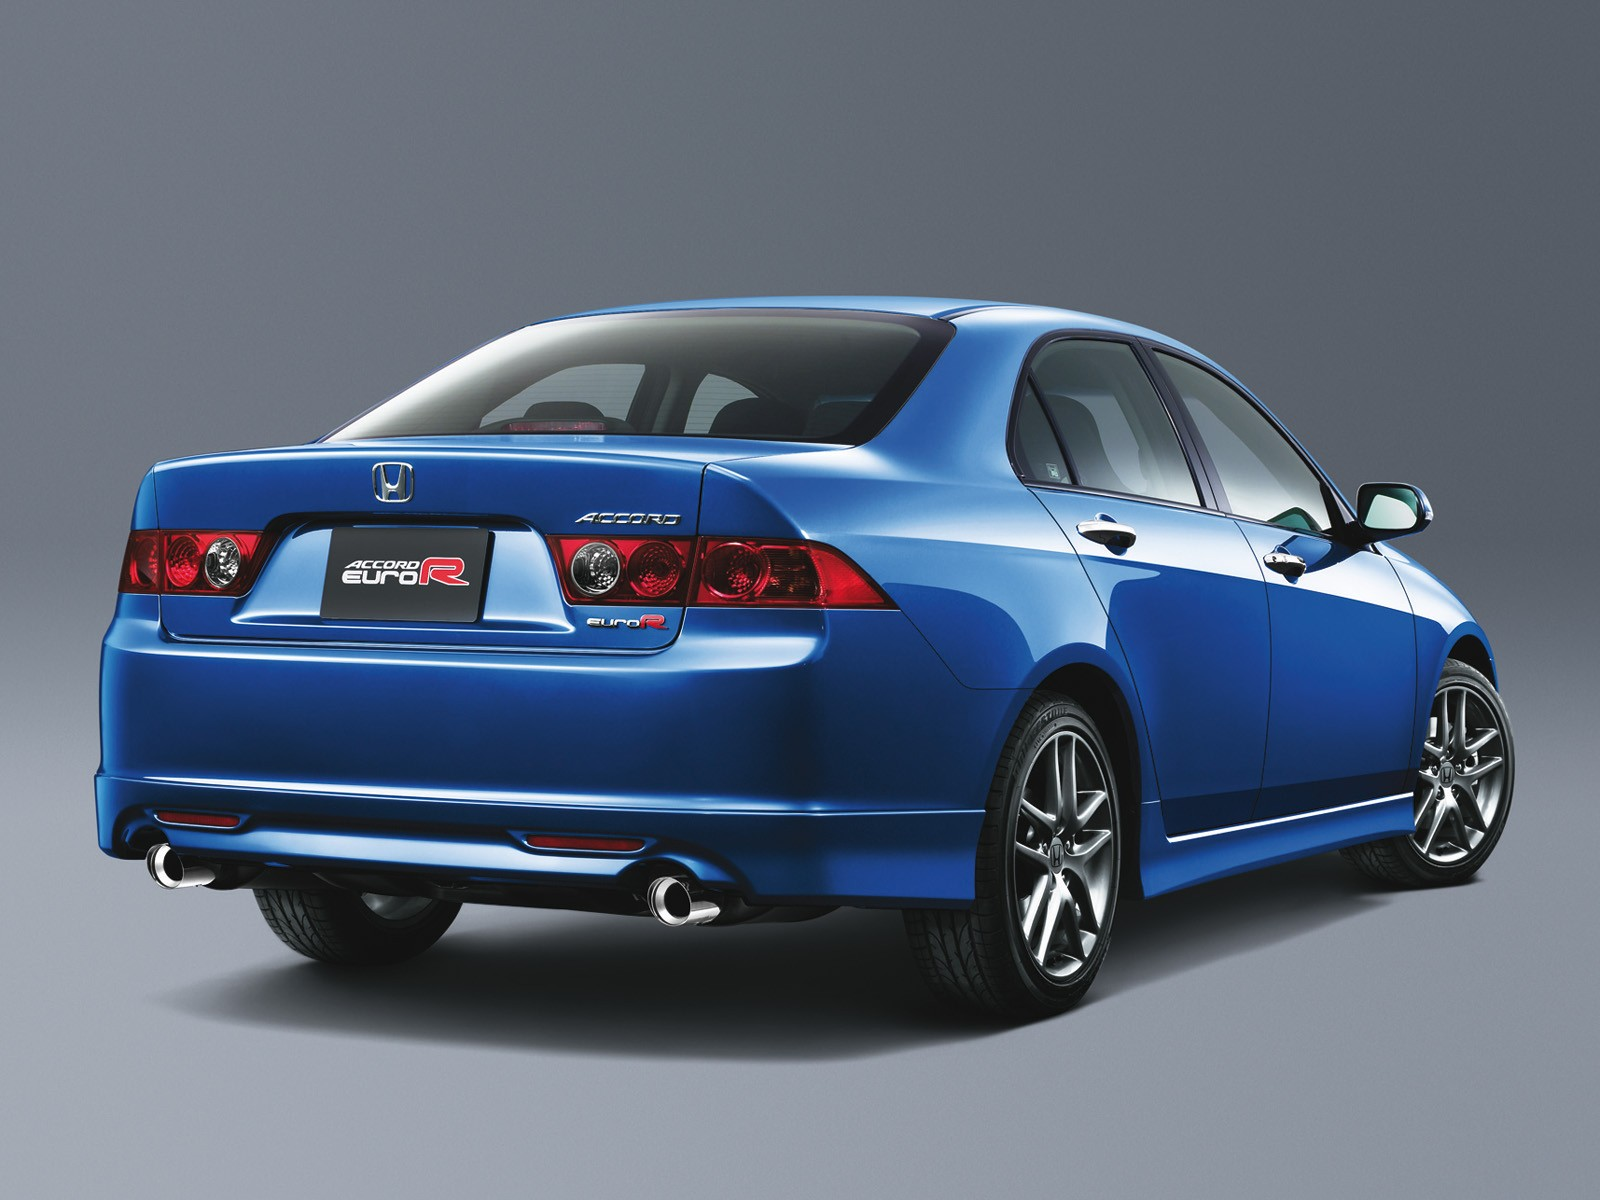 HONDA Accord 4 Doors - 2006, 2007, 2008 - autoevolution